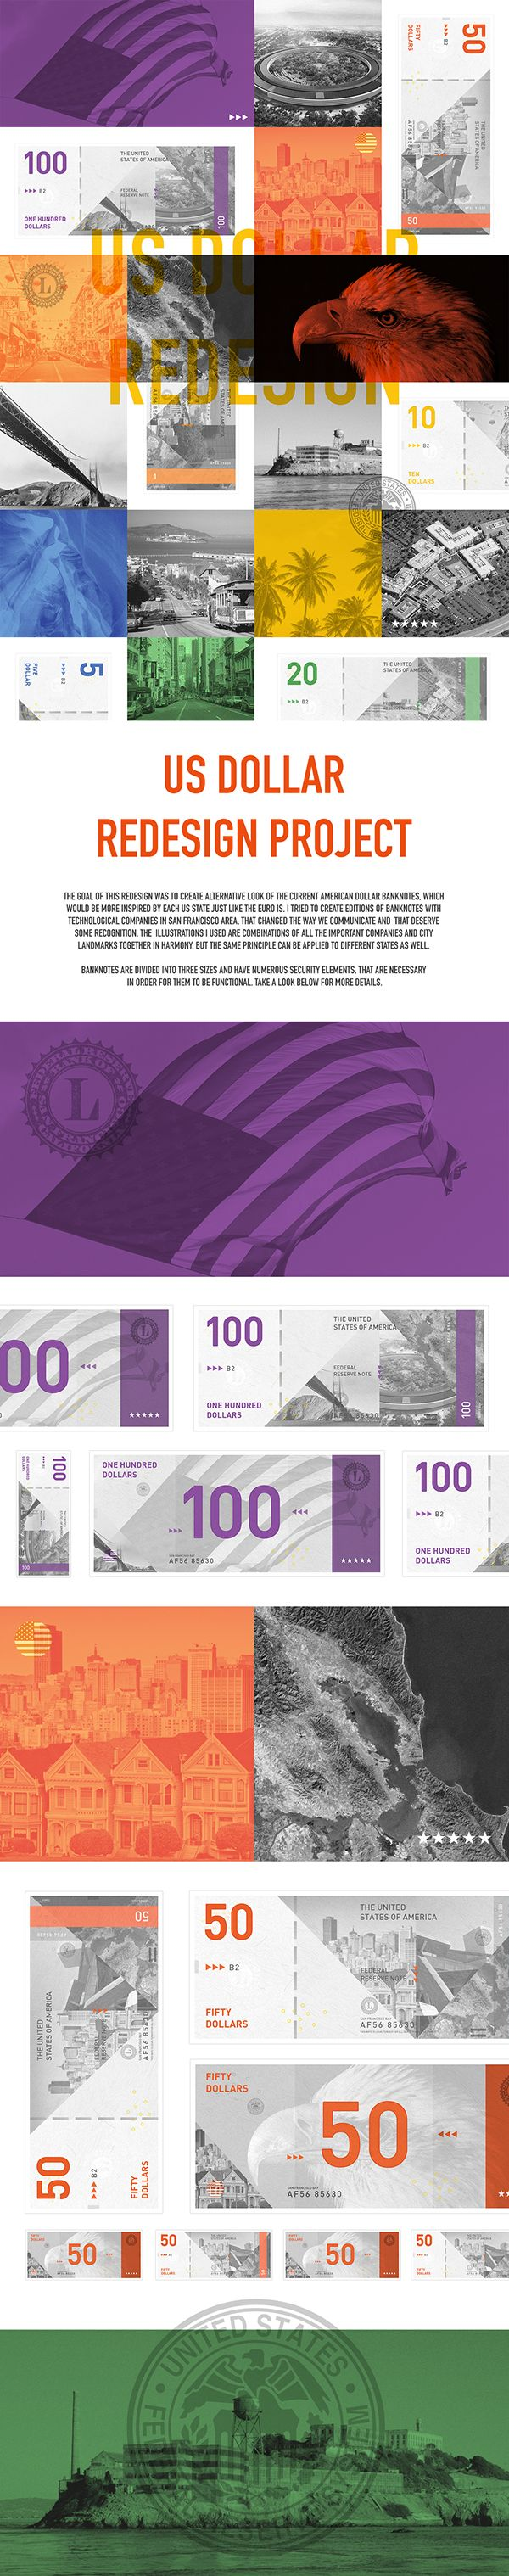 US Dollar Redesign Project I worked on as a school task, where I tried to redesign dollar banknotes. Feel free to share!